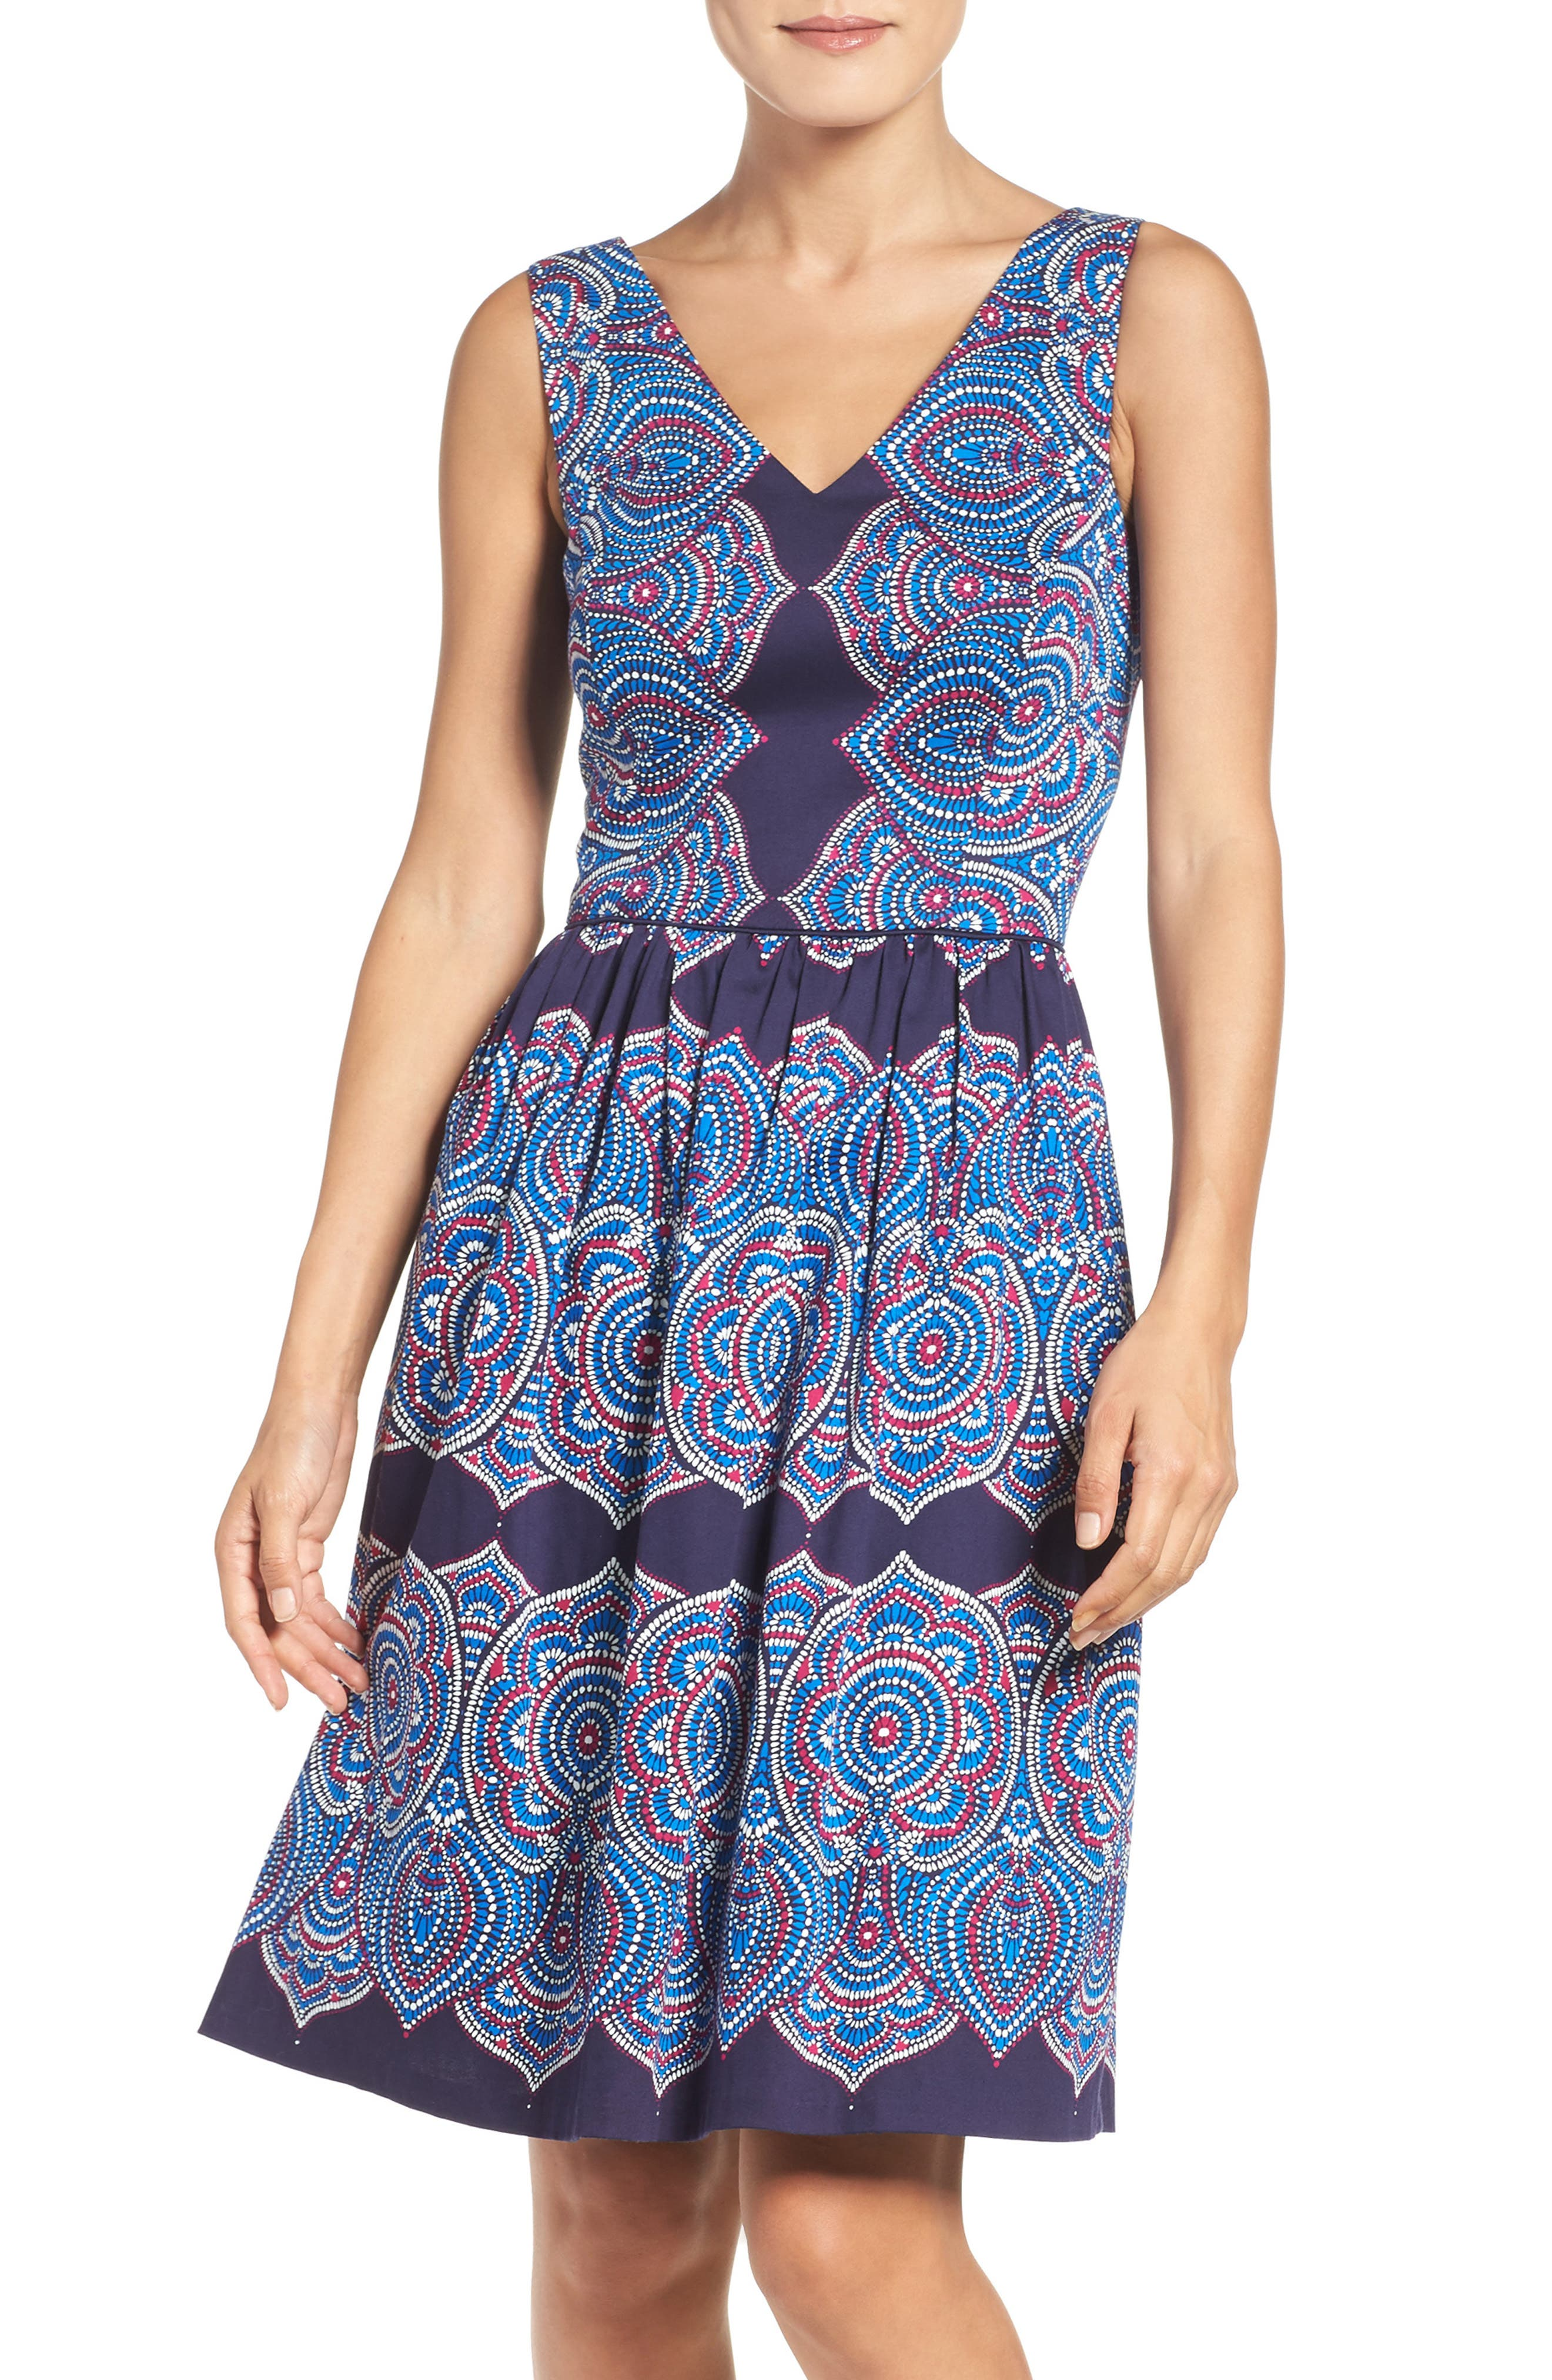 Alternate Image 1 Selected - Maggy London Print Fit & Flare Dress